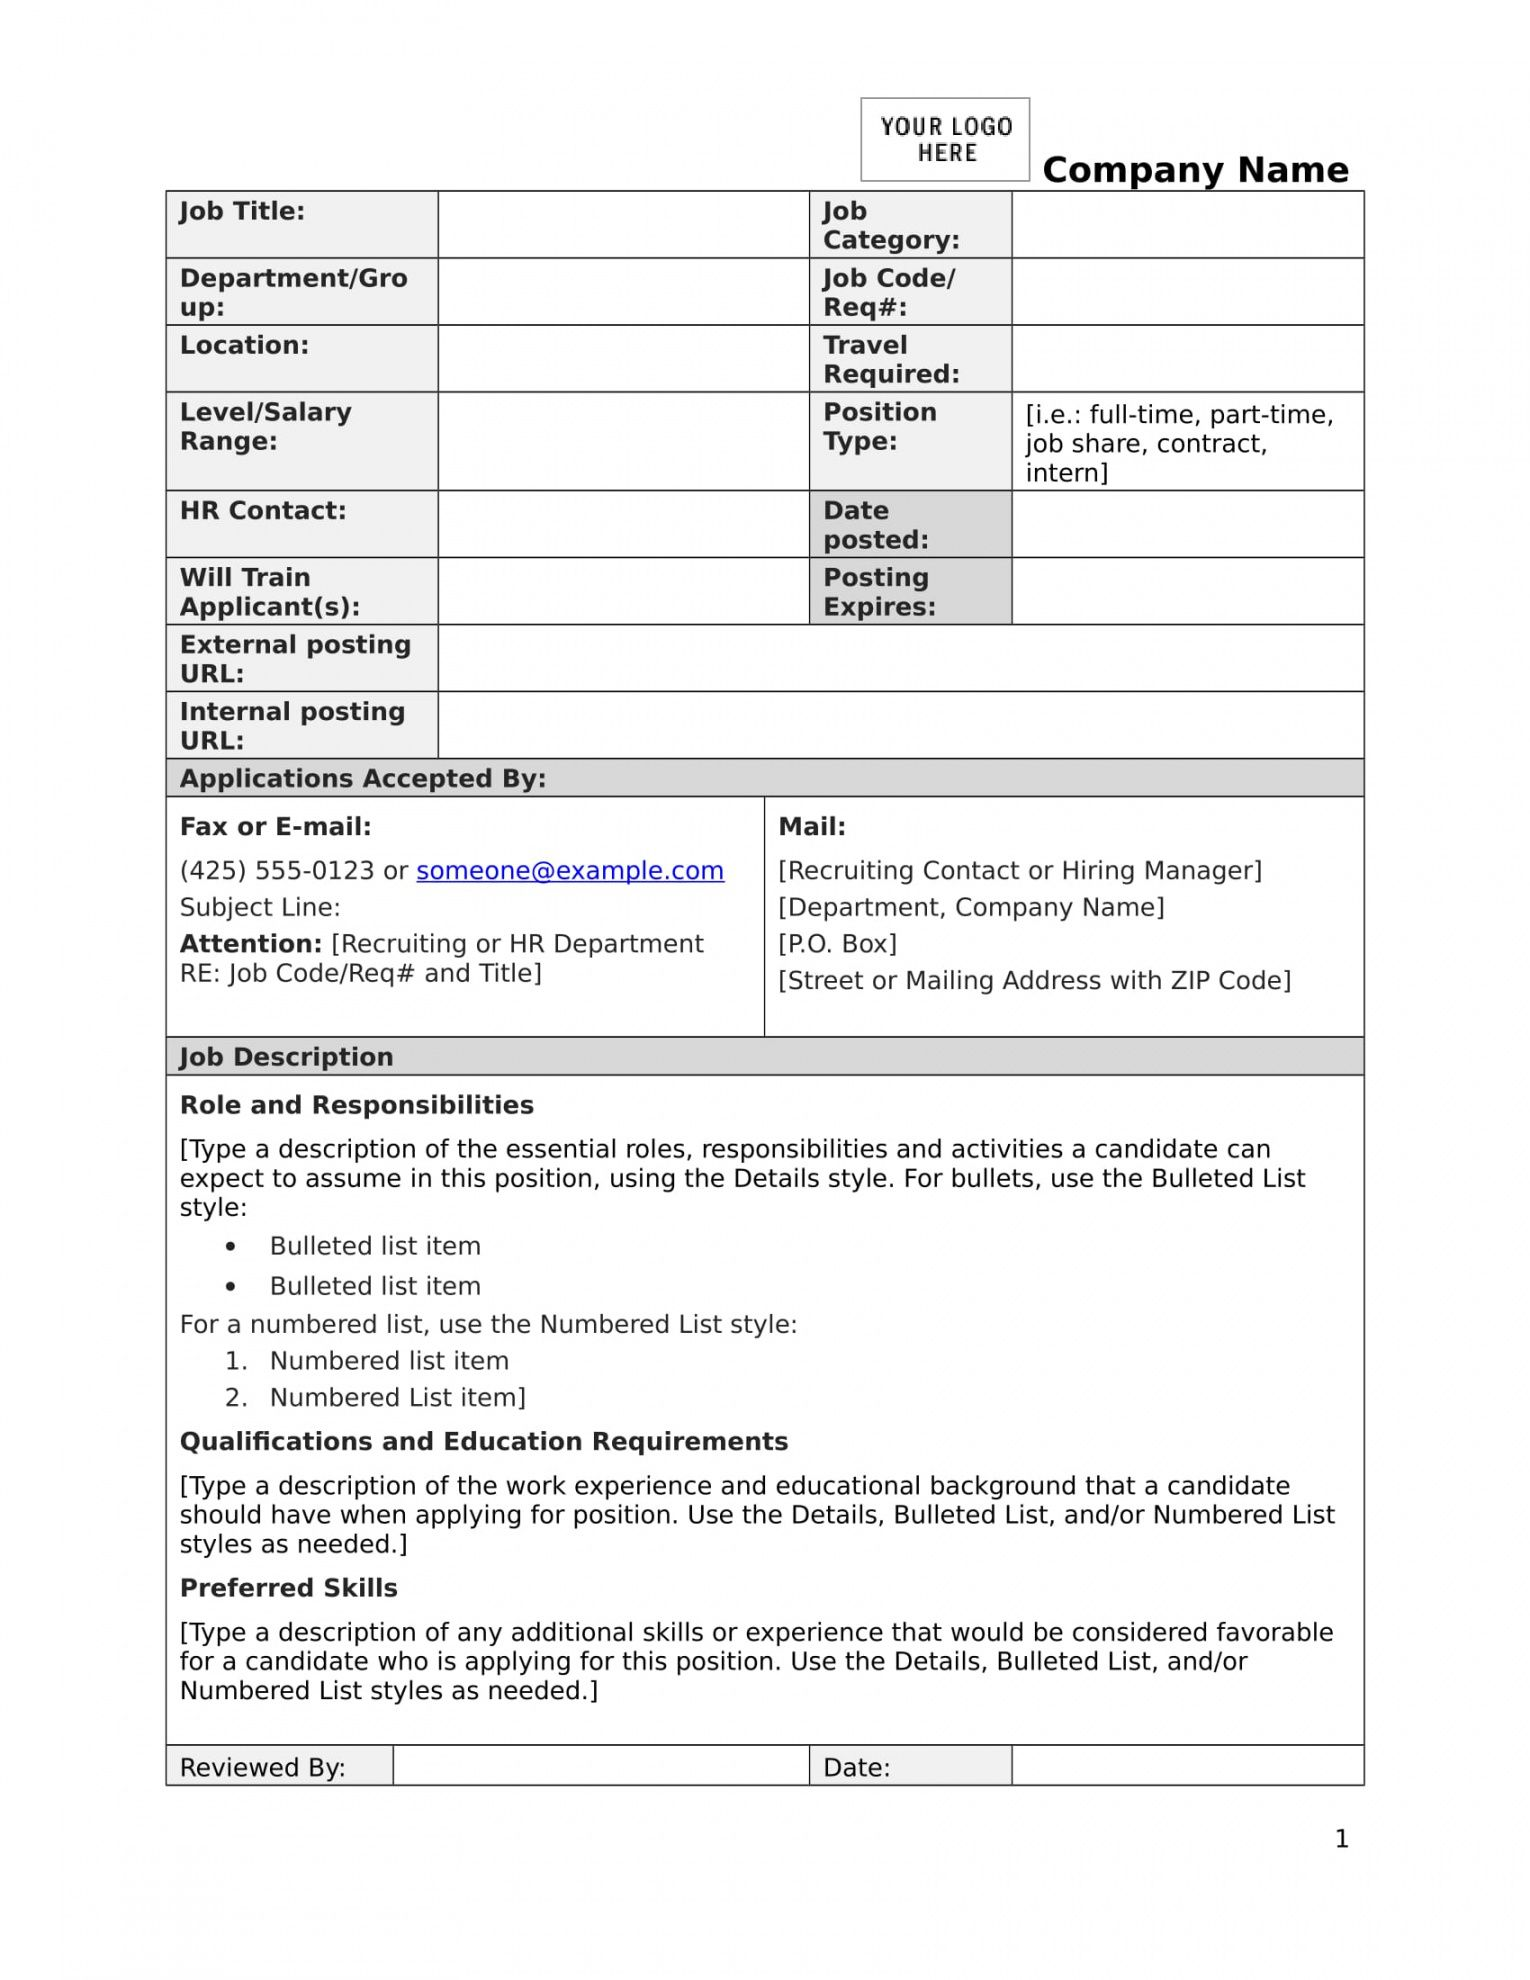 free free 15 job description forms in pdf  ms word blank job description template and sample